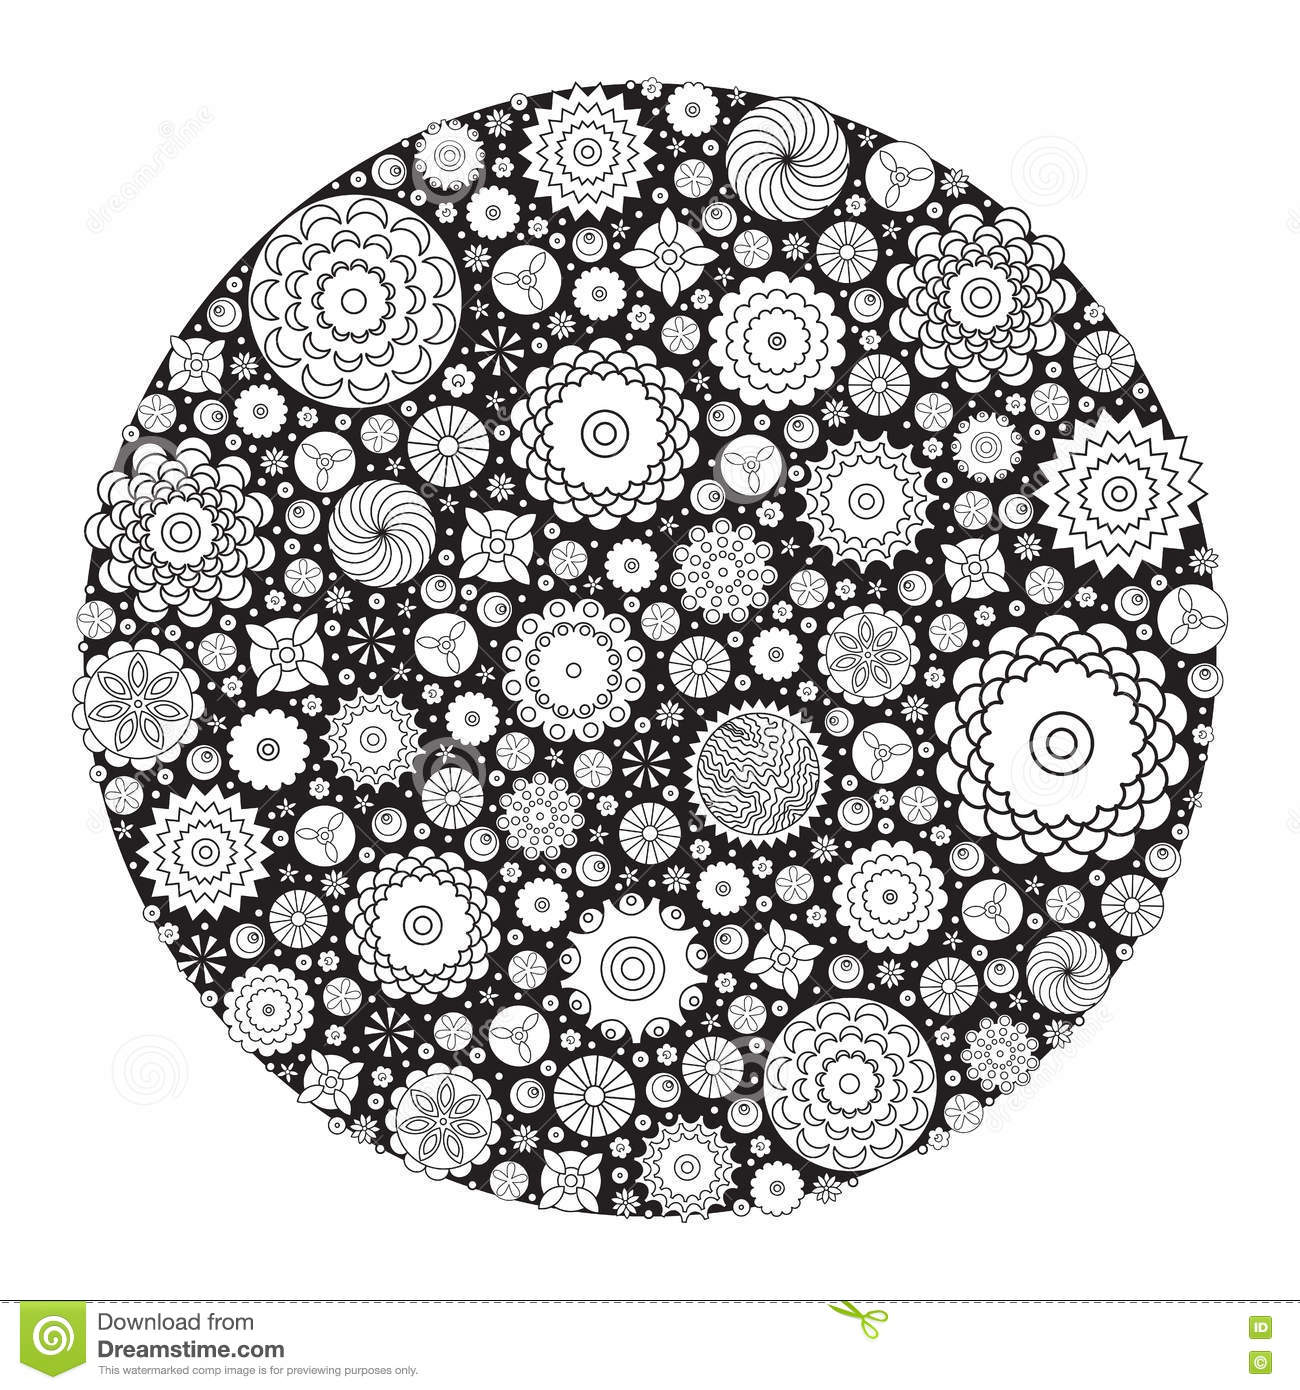 Download Vector Monochrome Floral Decorative Pattern For Coloring Book Grown Up And Adult Stock